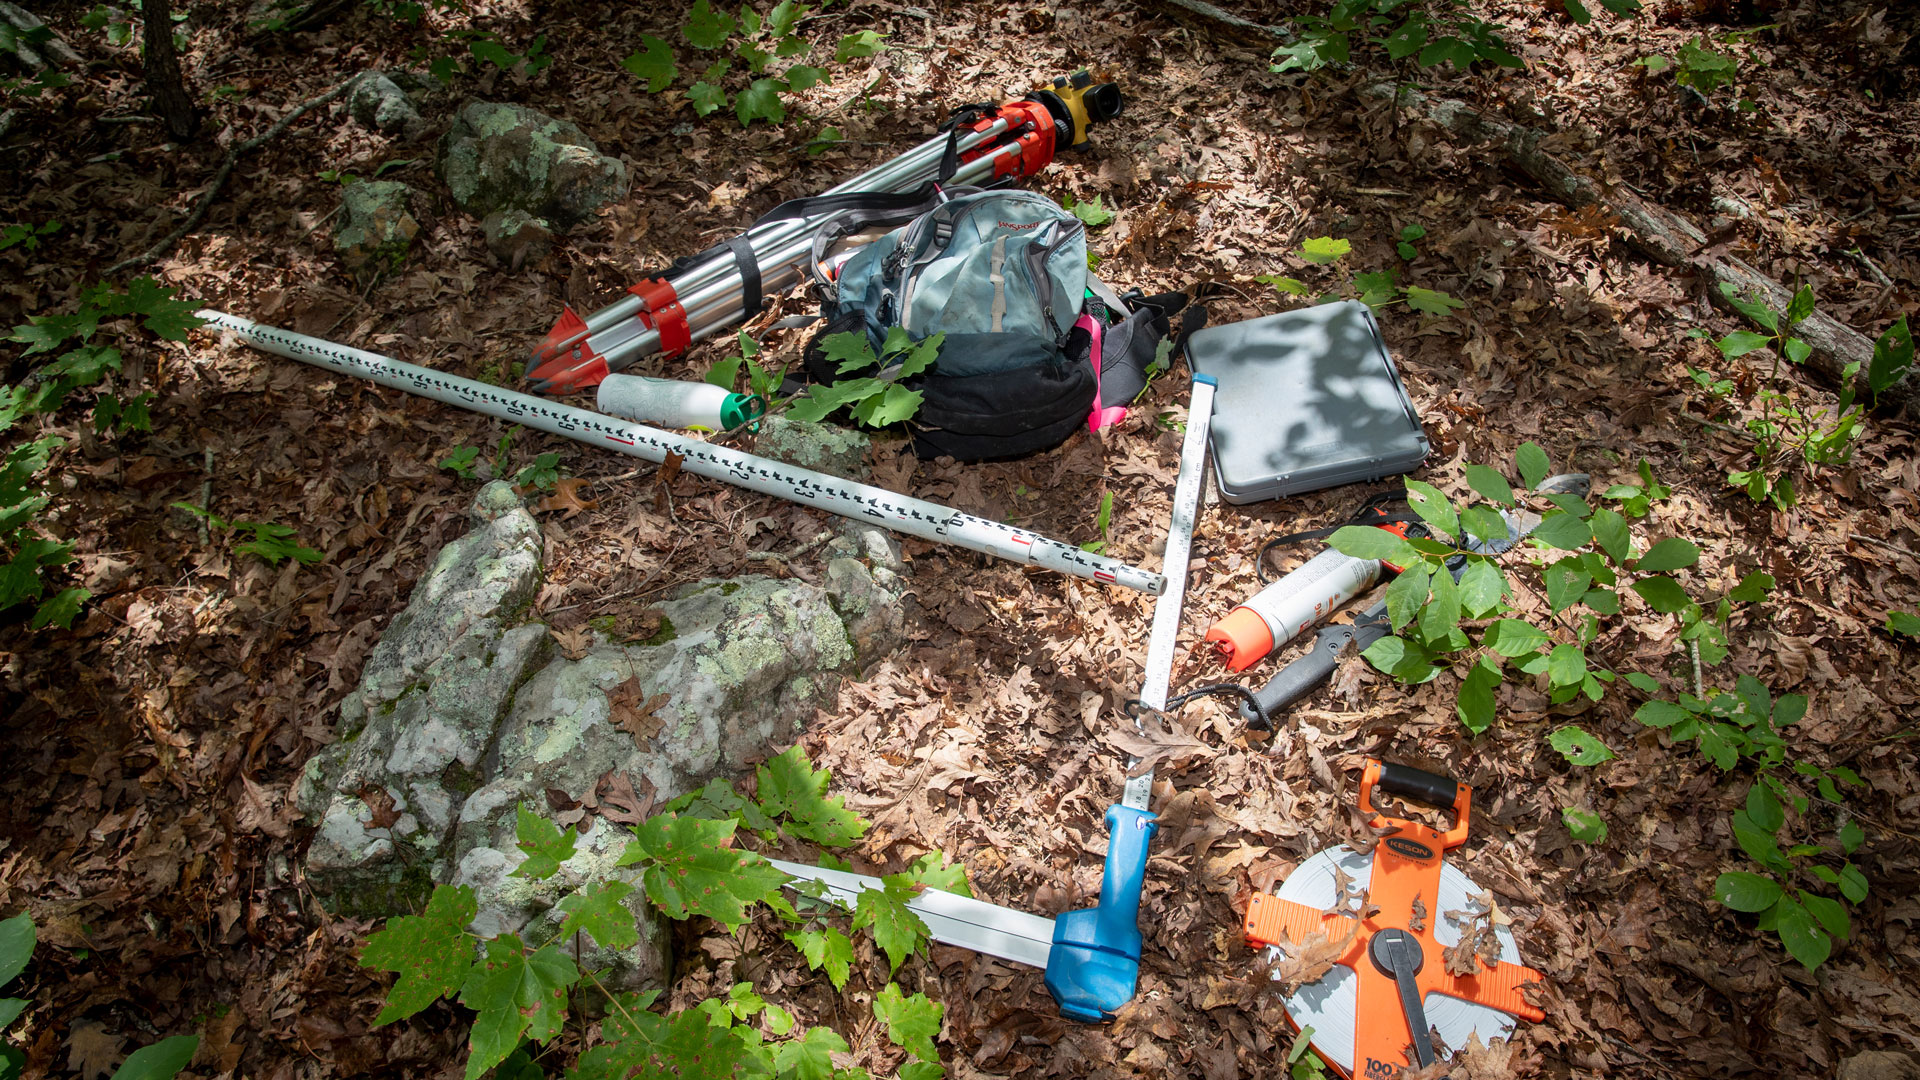 Surveying and assessment equipment lays on the ground in the Mark Twain National Forest on July 17, 2018.